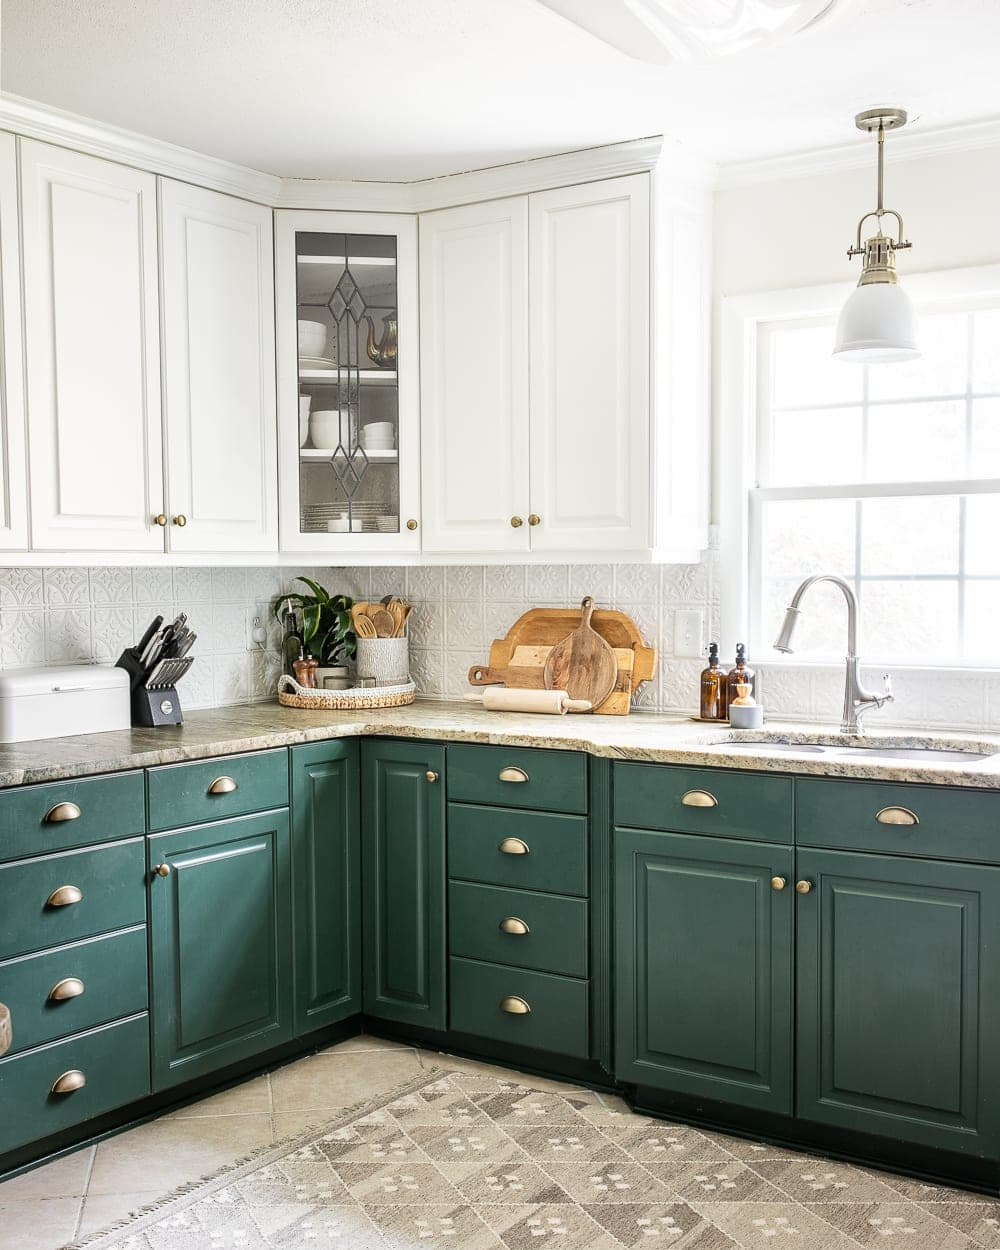 How to Decorate Kitchen Countertops | 1 simple rule for styling kitchen countertops and 10 items to make them pretty but functional.